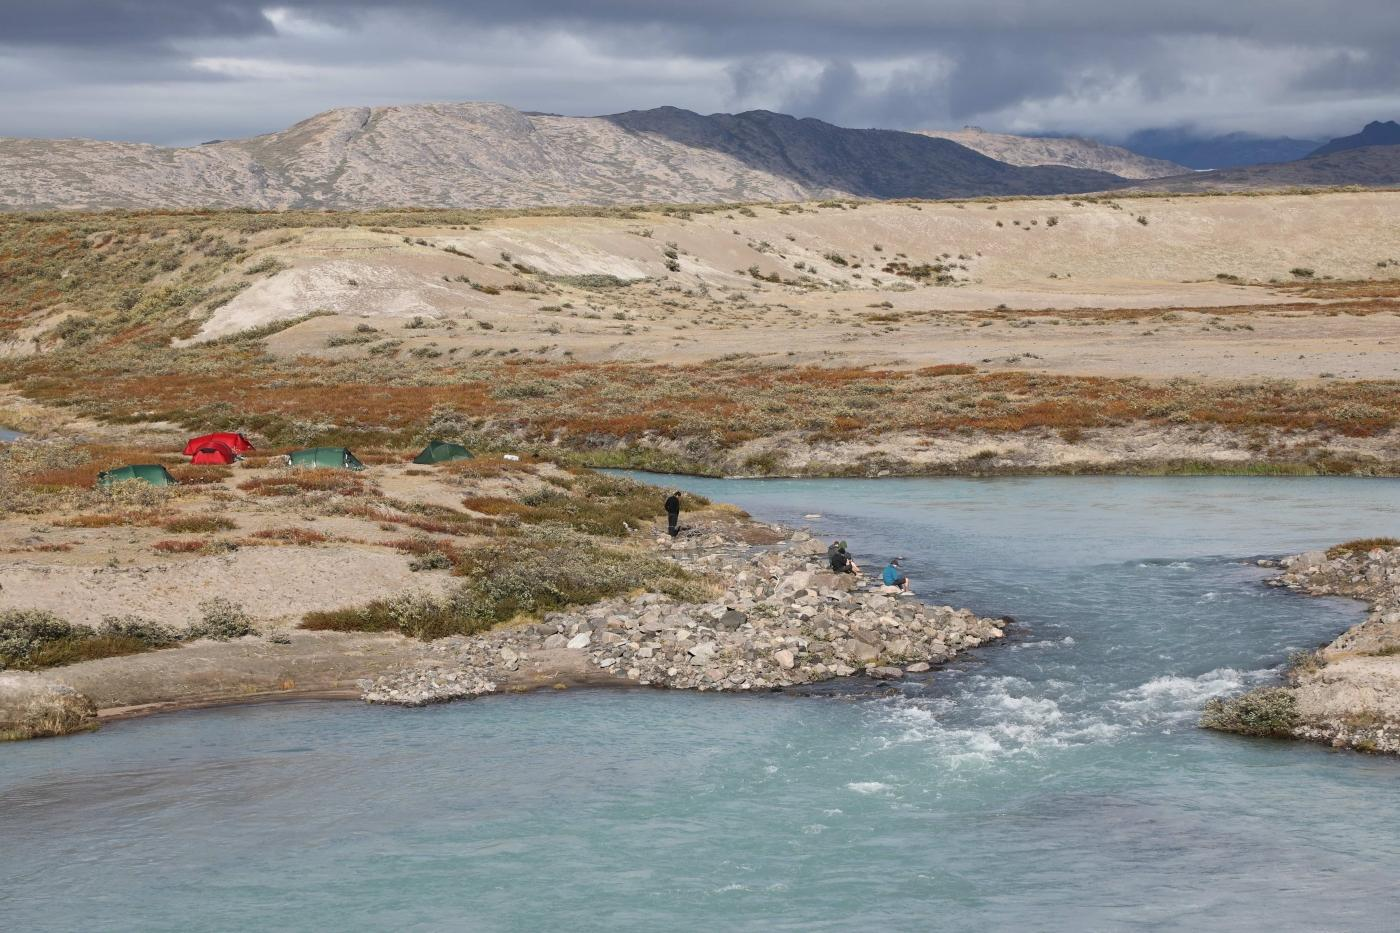 Greenland Outdoors campsite close to river in summer. Photo by Morten Christensen - Visit Greenland